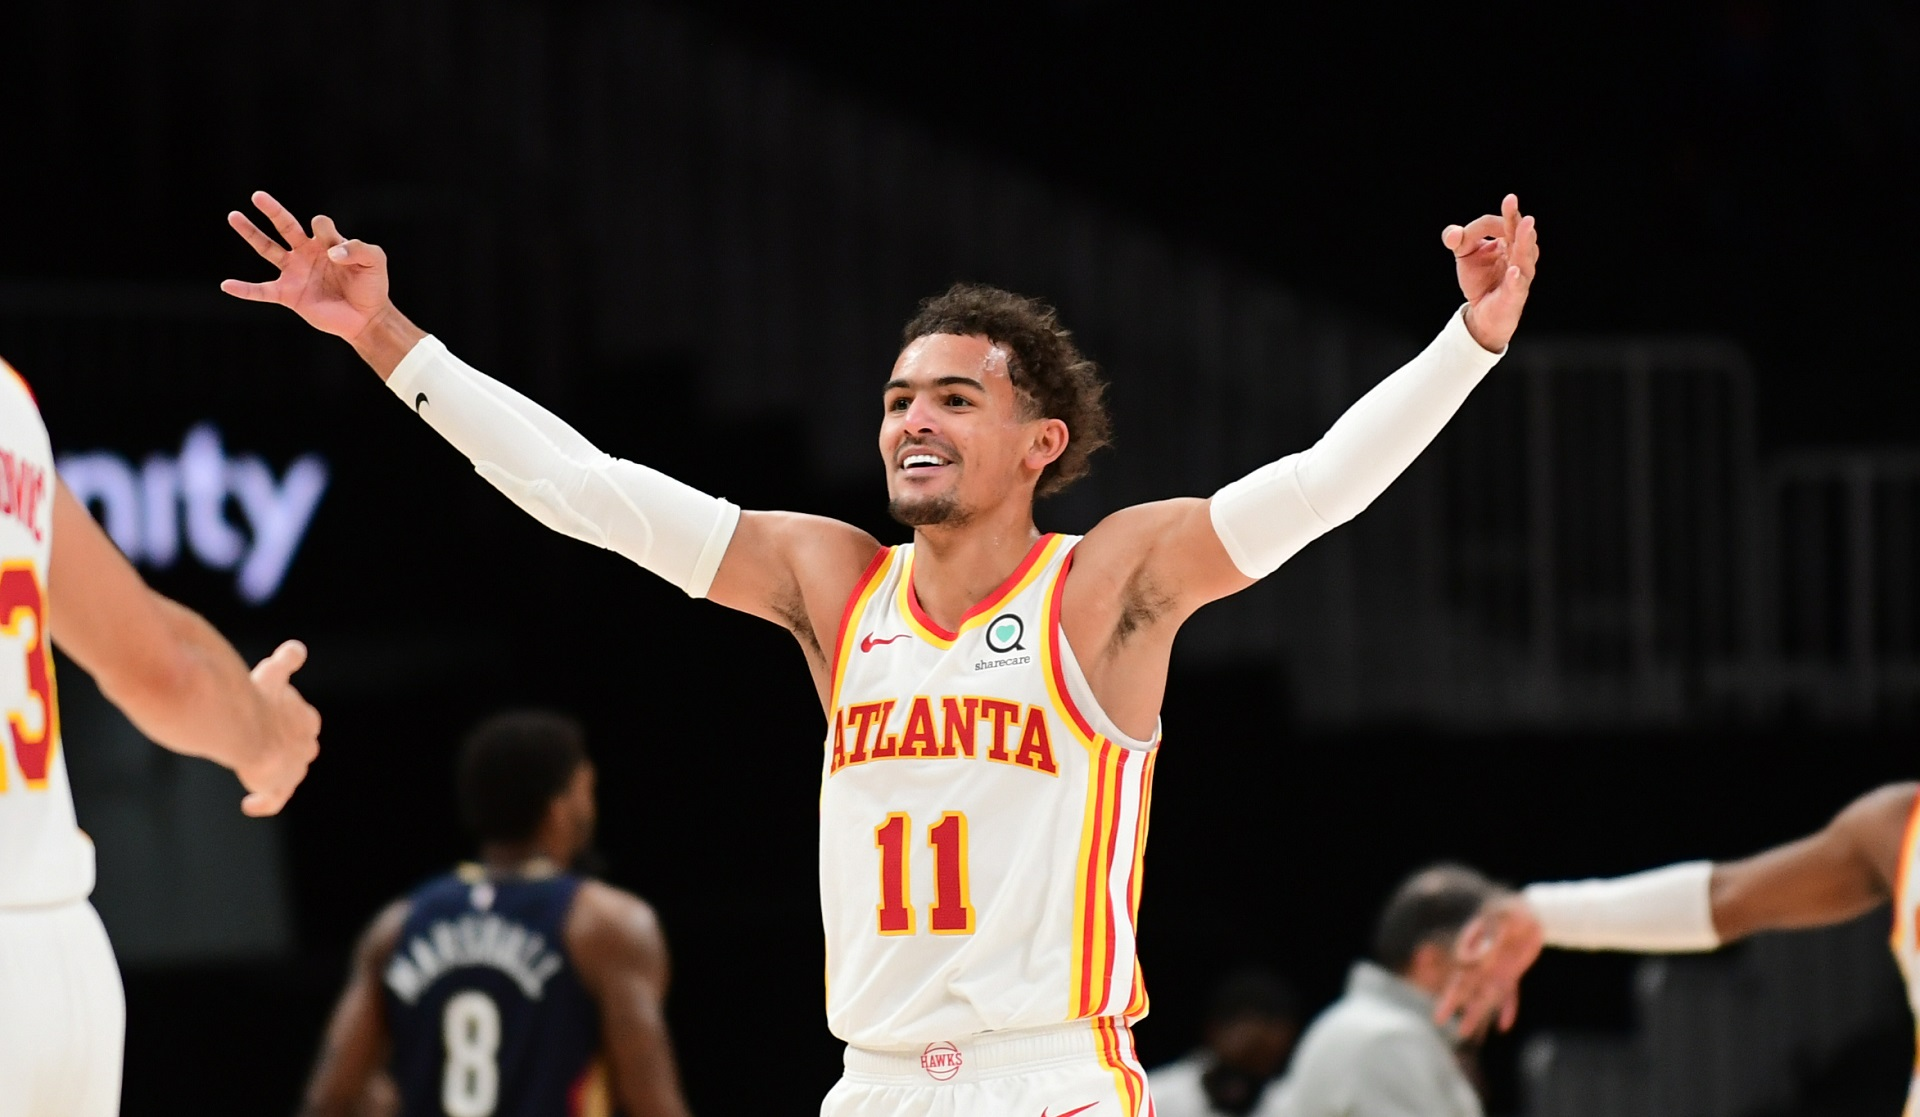 Trae Young's top plays from 2020-21 season